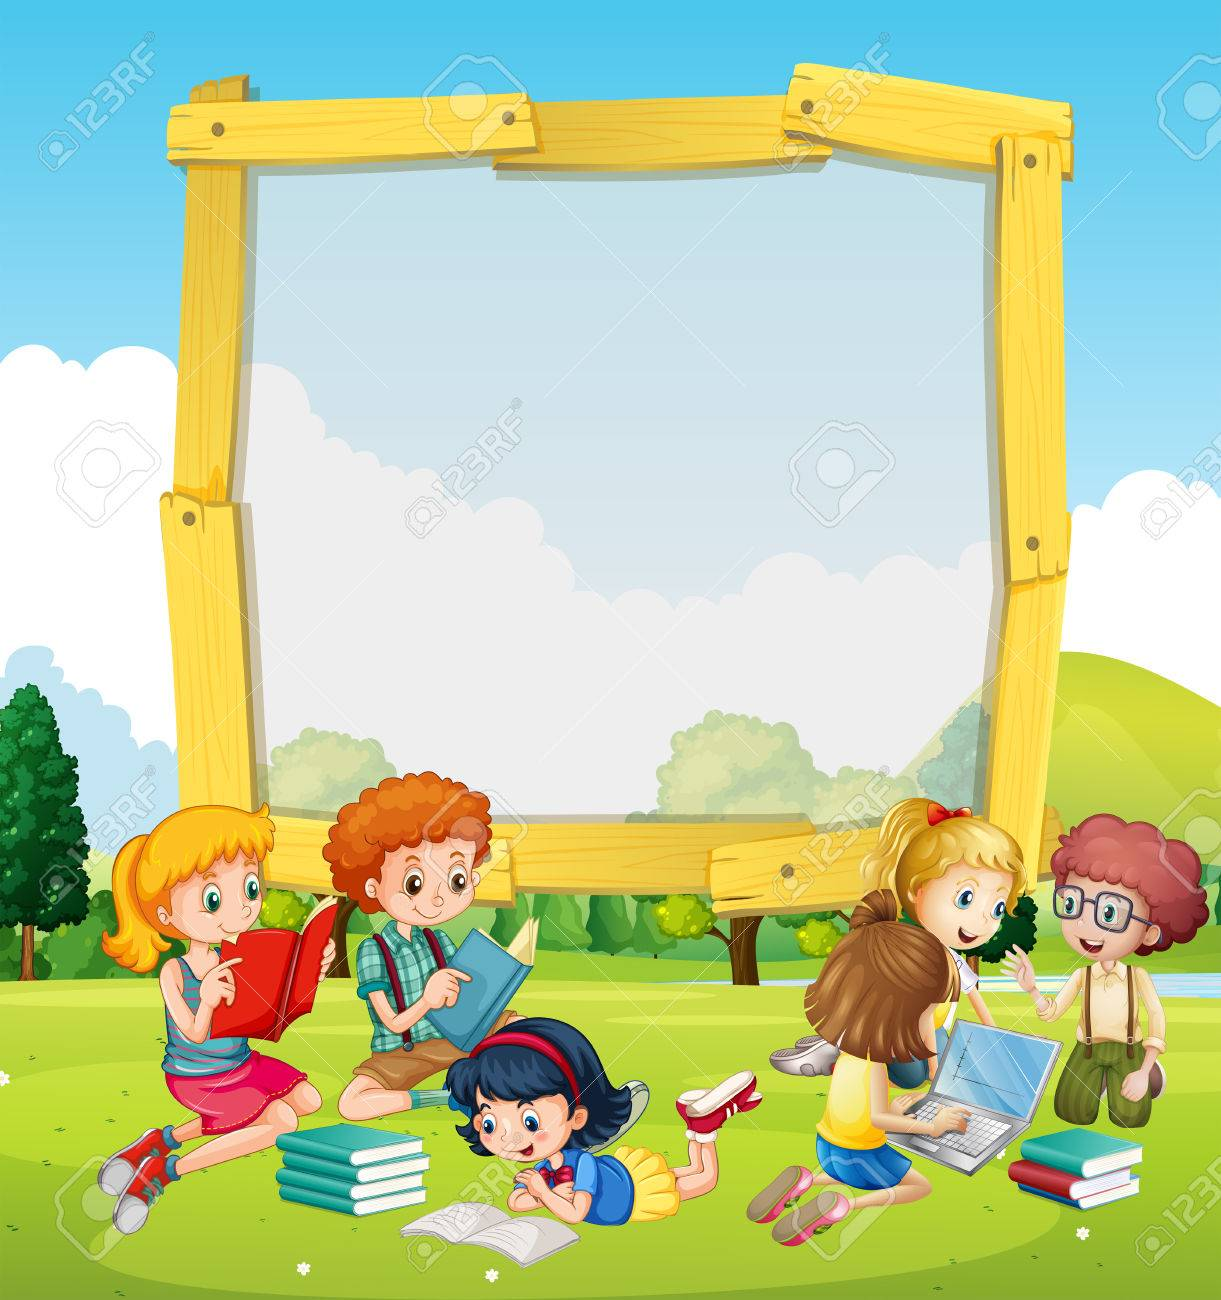 Border Template With Kids Reading Illustration Royalty Free Cliparts